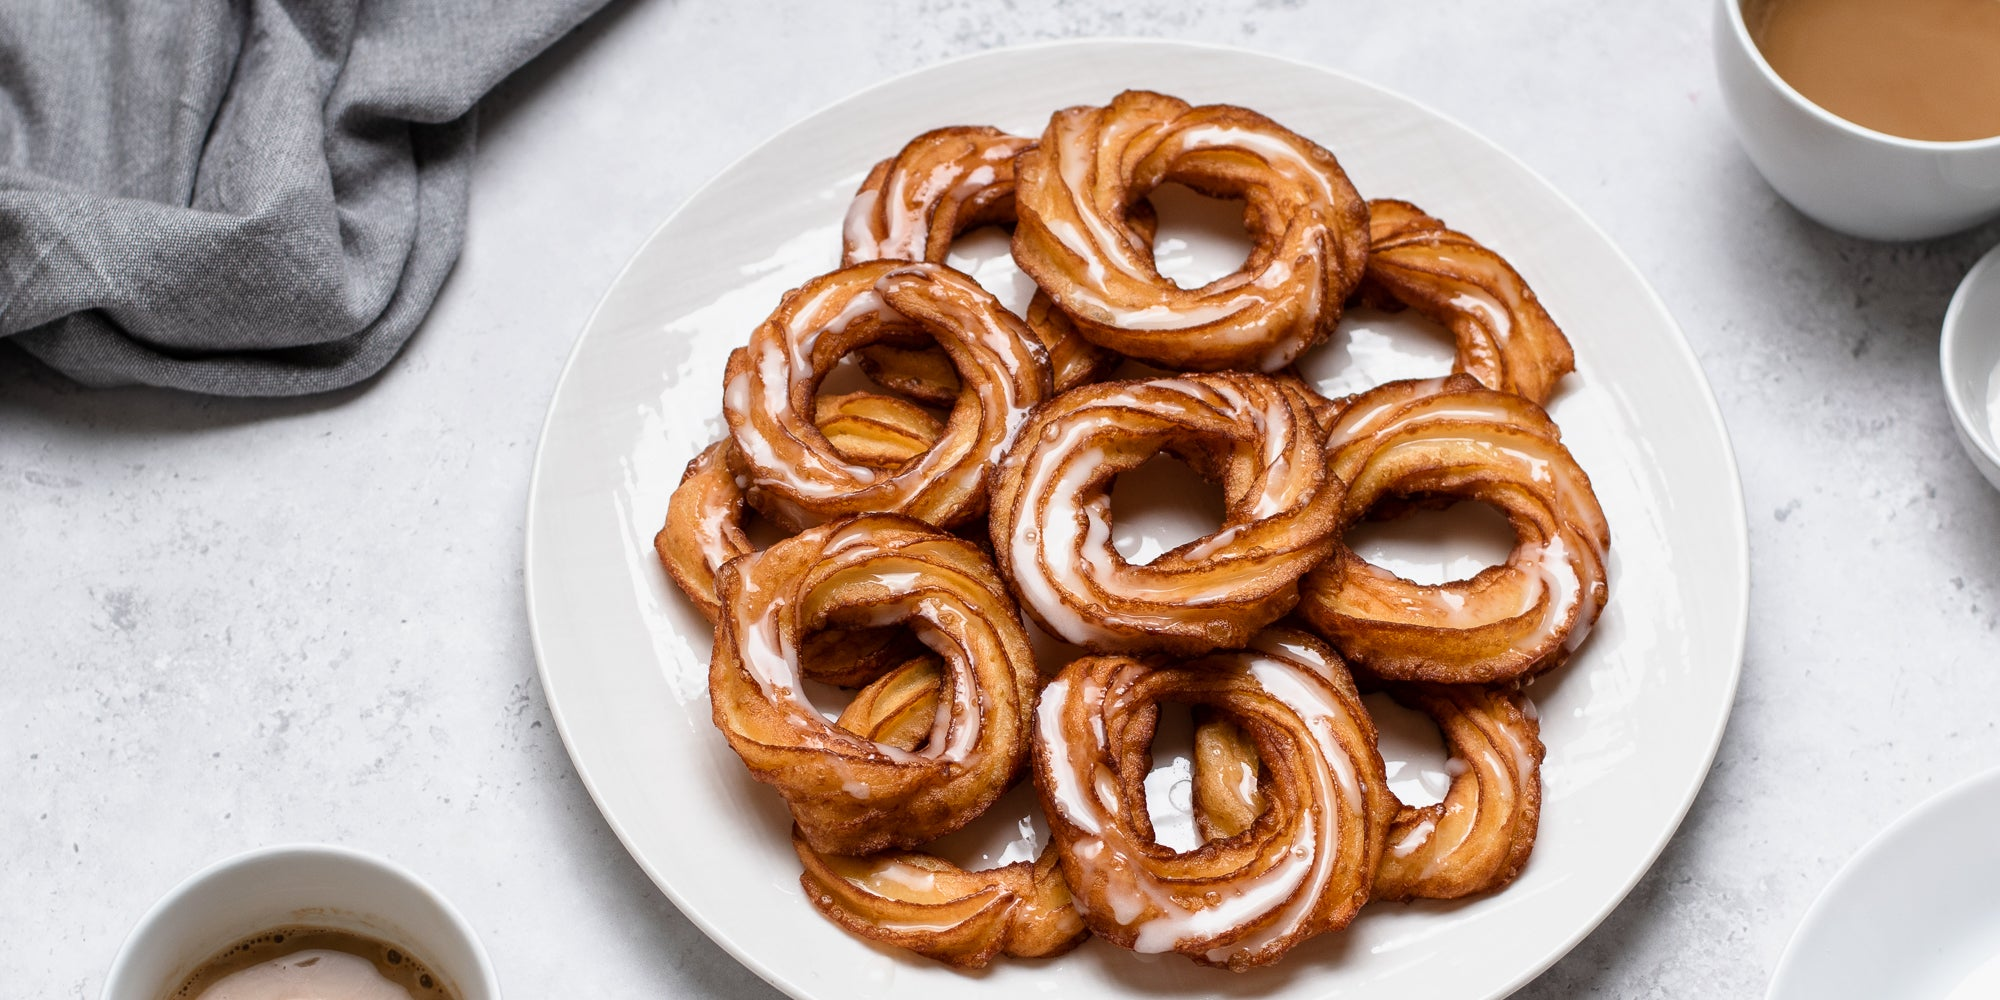 Close up of a plate of Apple Cider Crullers with icing and cinnamon sprinkled ontop